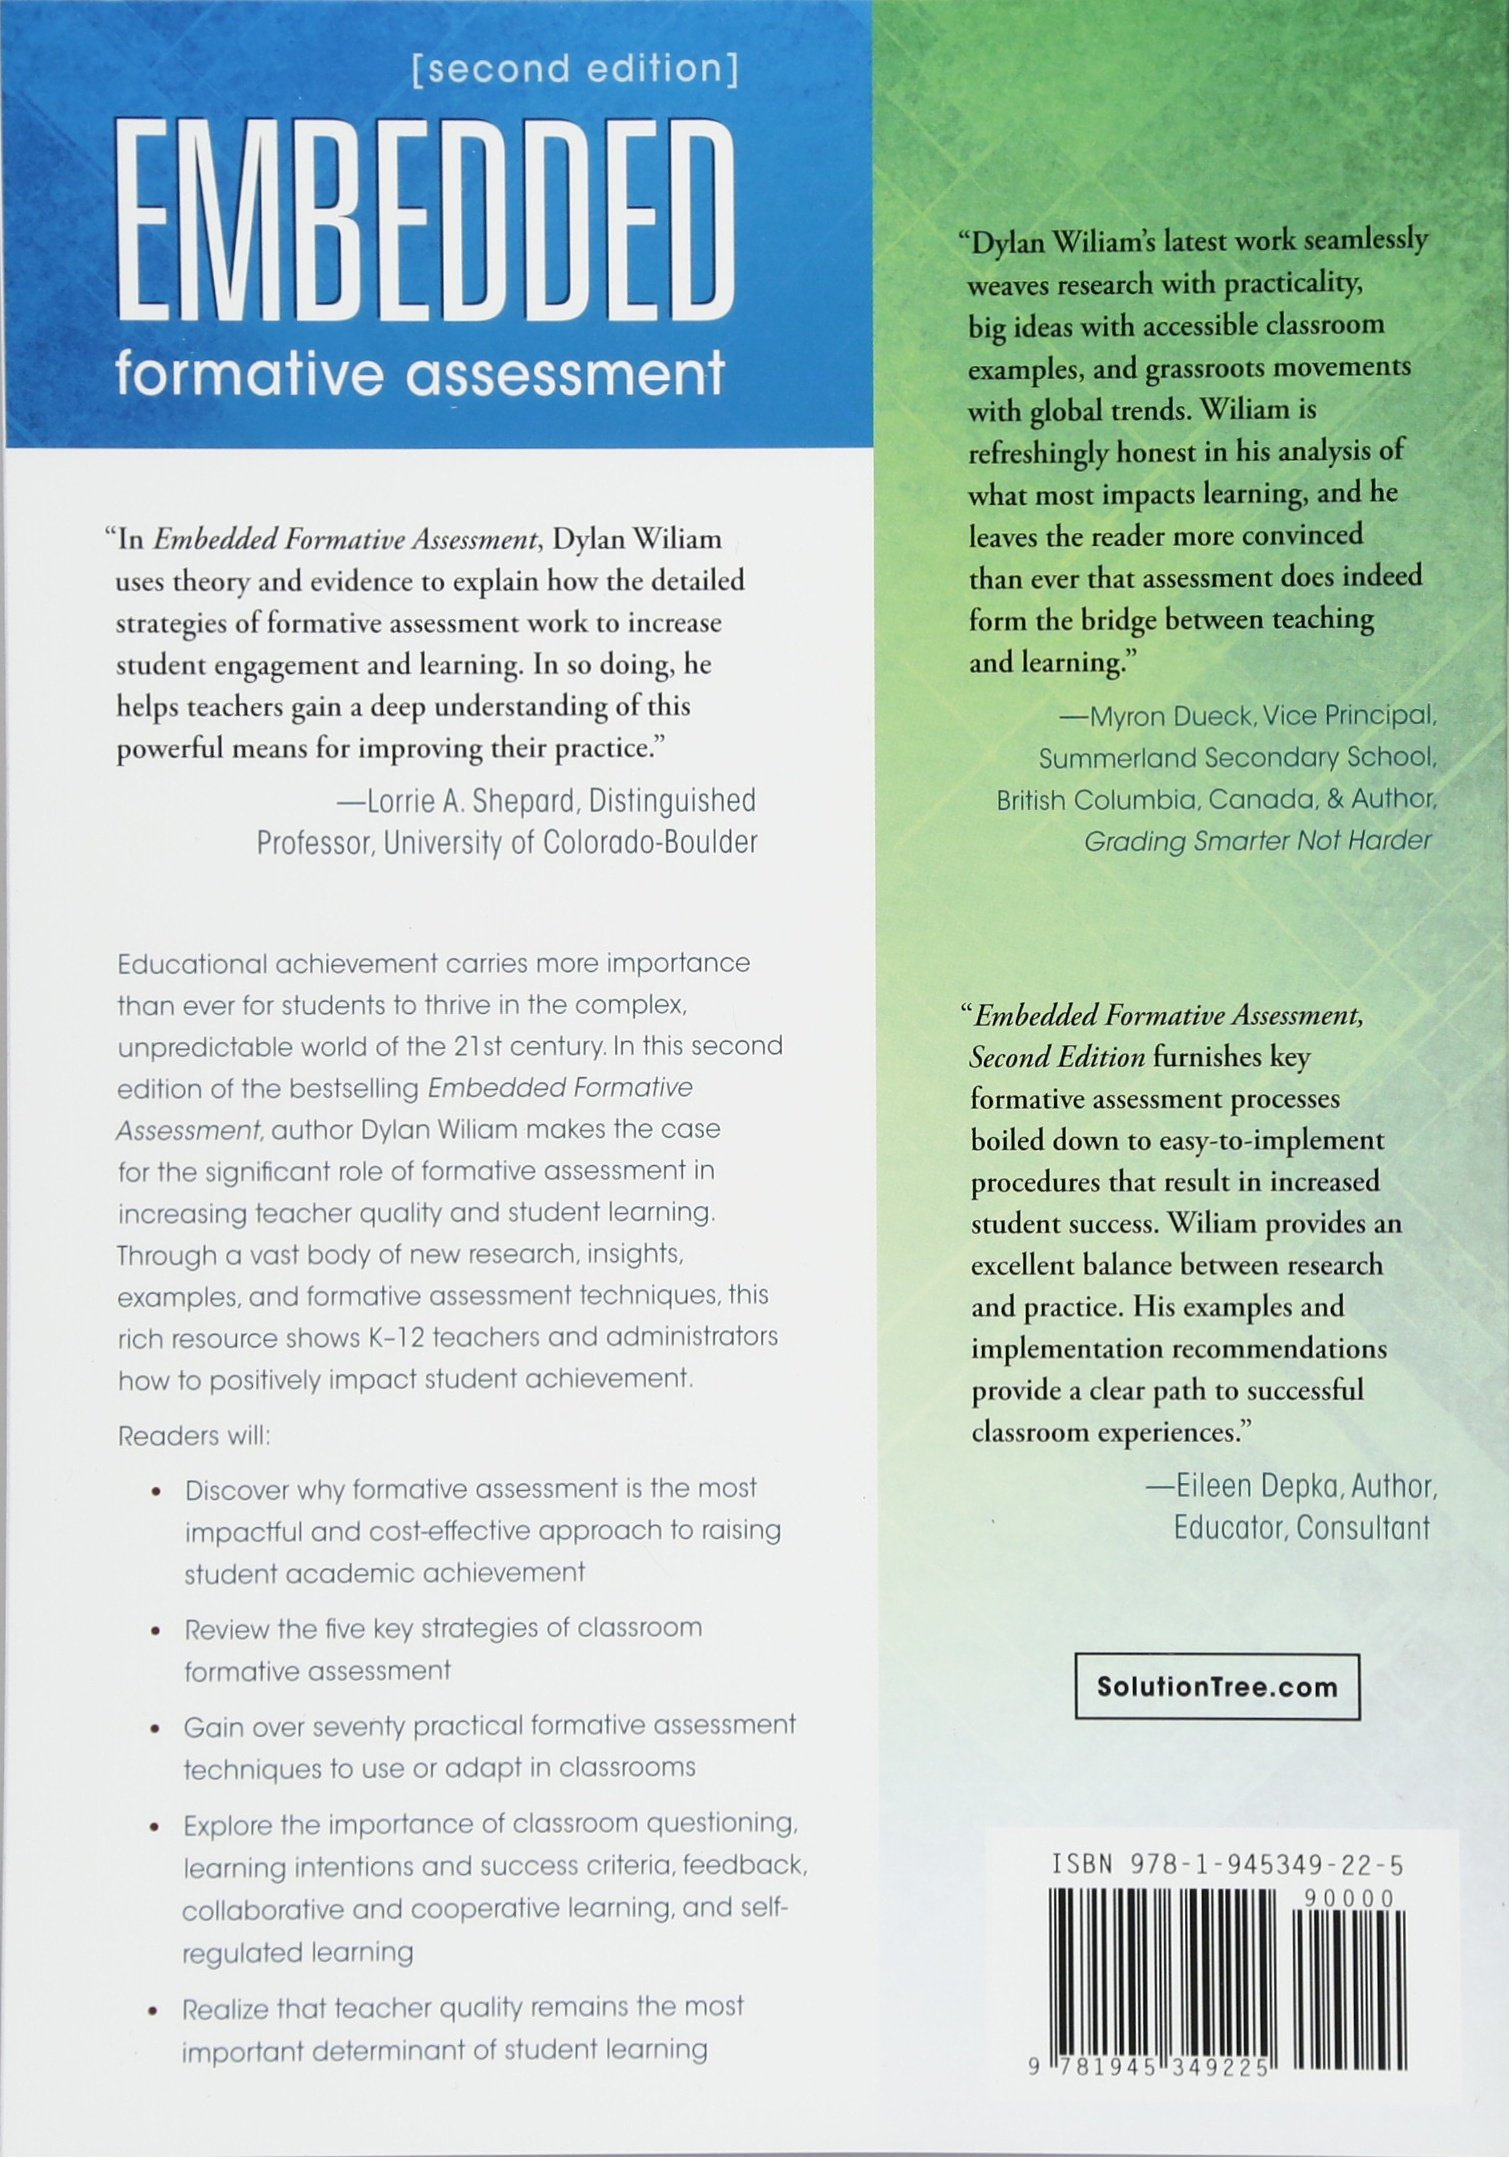 Embedded Formative Assessment: Strategies For Classroom Assessment That  Drives Student Engagement And Learning: Amazon.co.uk: Dylan Wiliam: Books